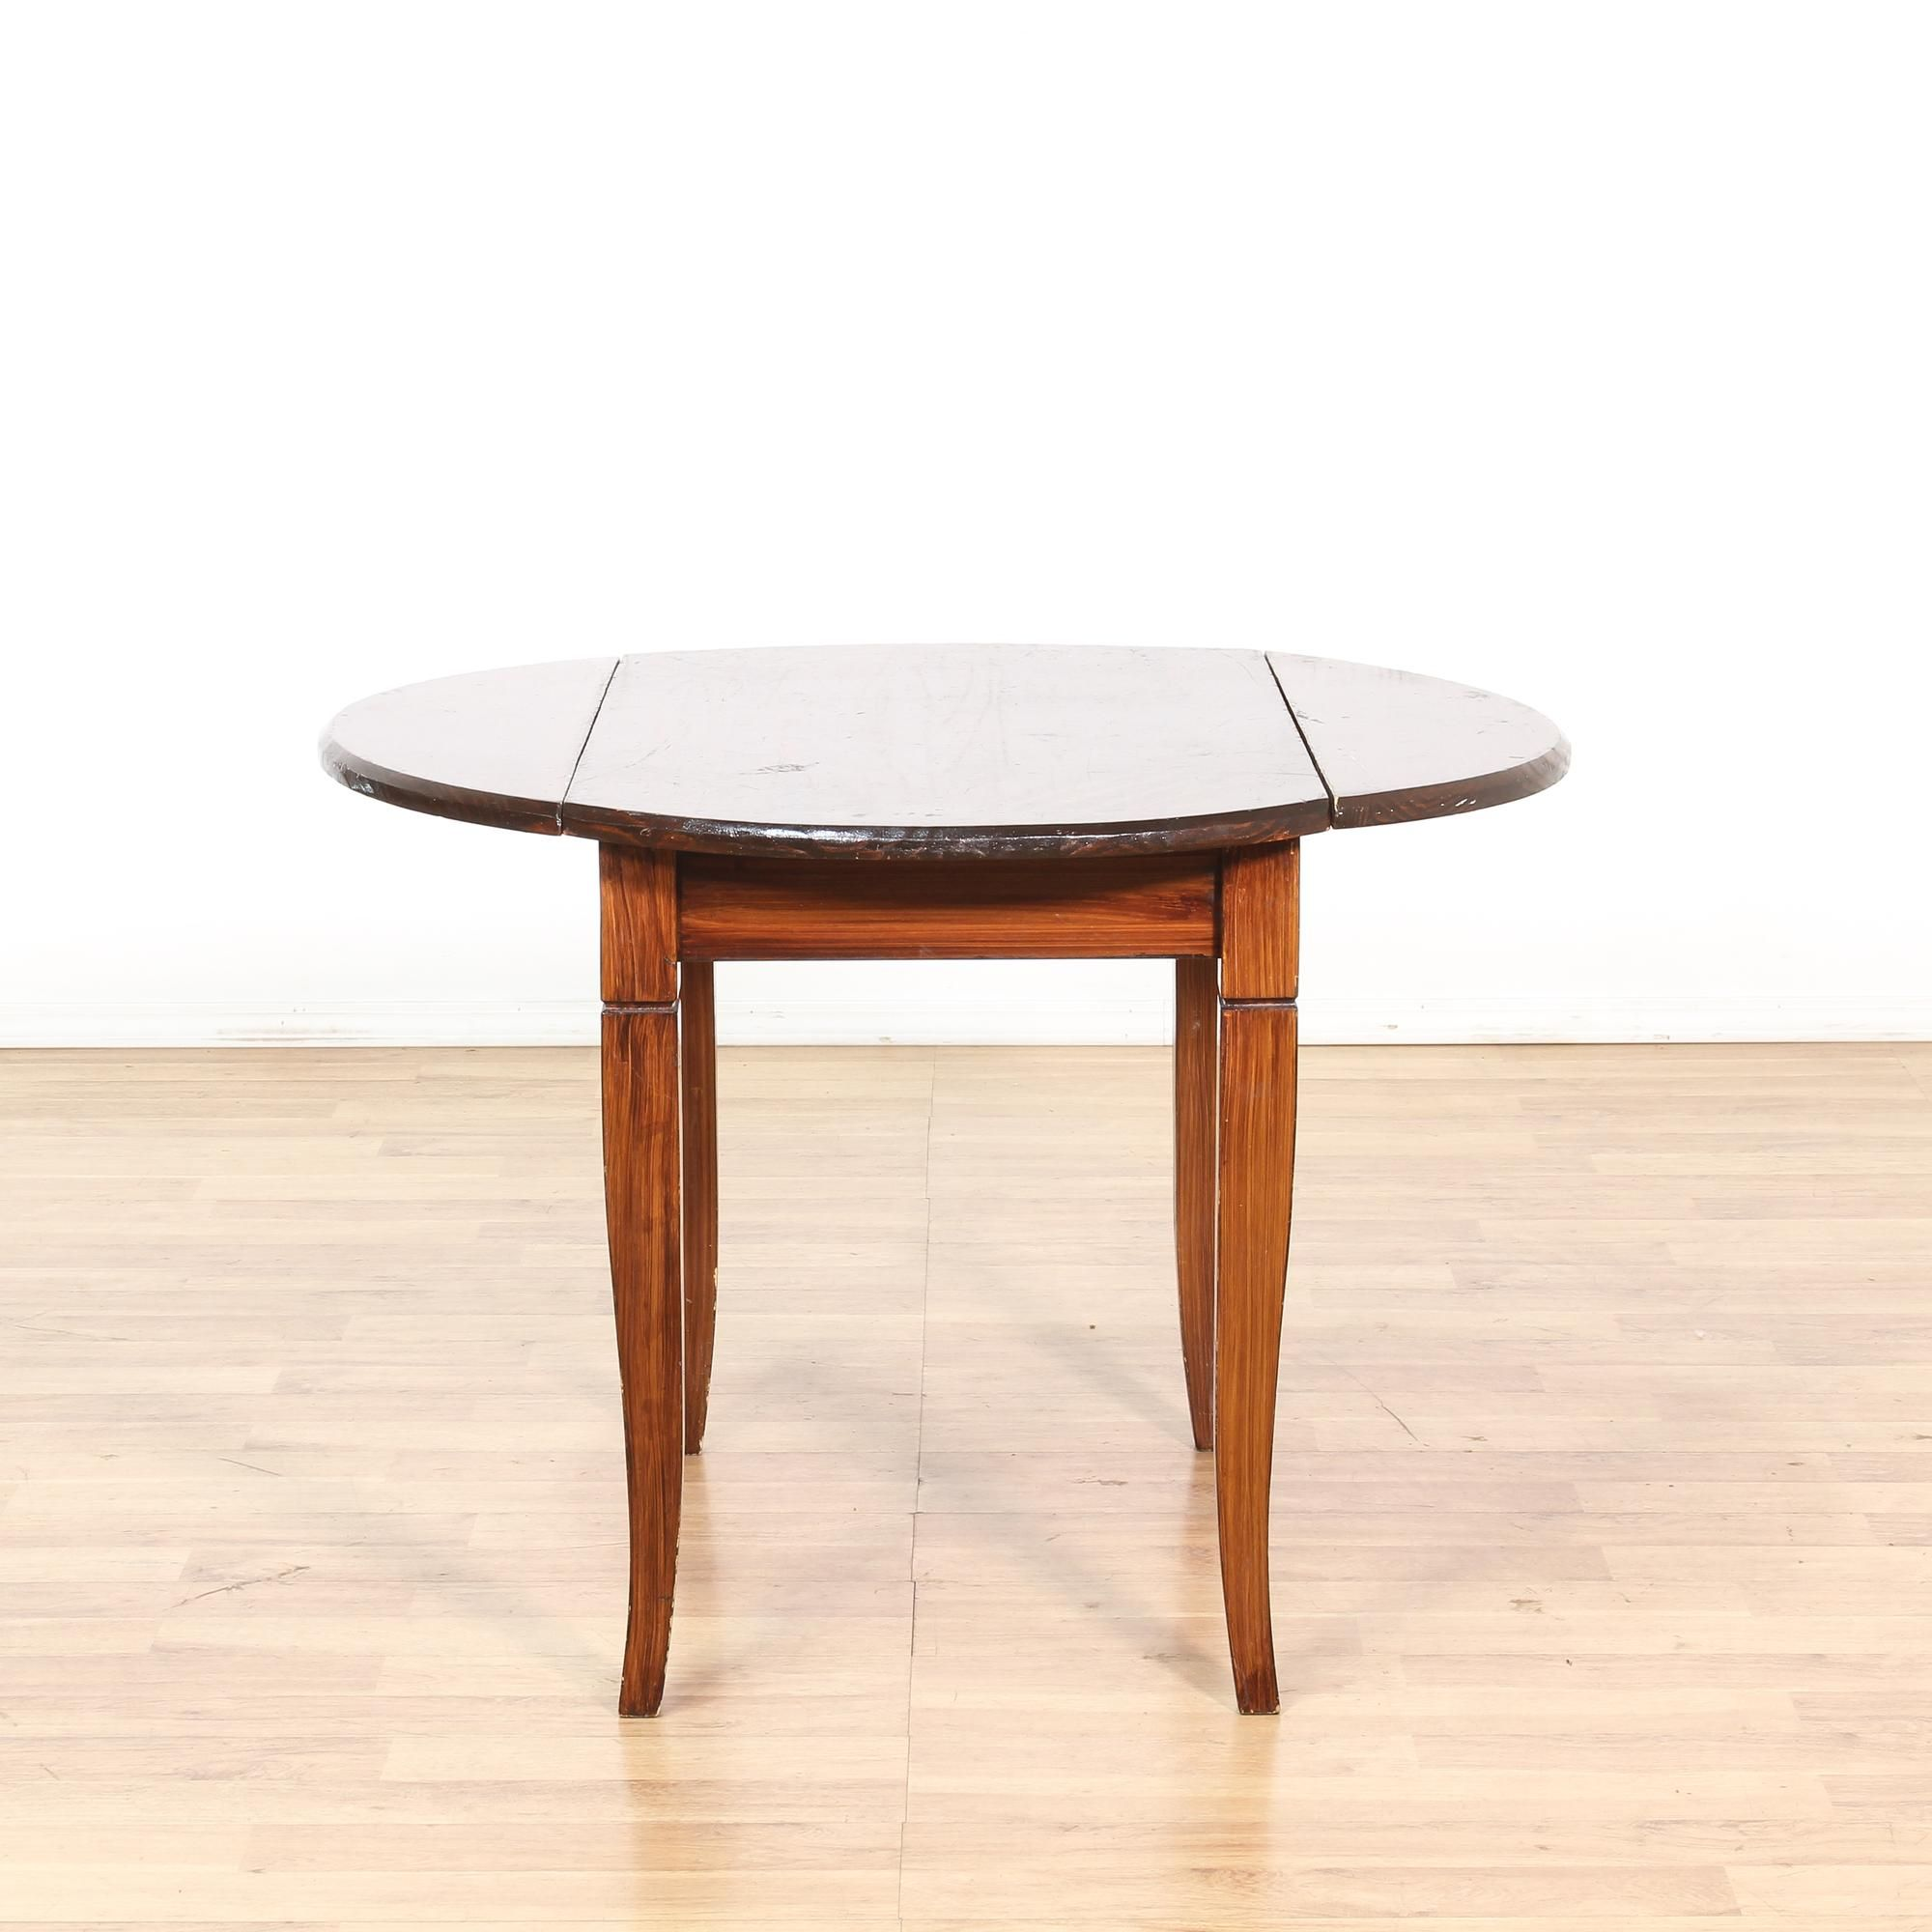 This Dining Table Is Featured In A Solid Wood With A Dark Stain. This  Traditional Style Kitchen Table Has 2 Drop Leaves, A Round Top, And Sabre  Legs.